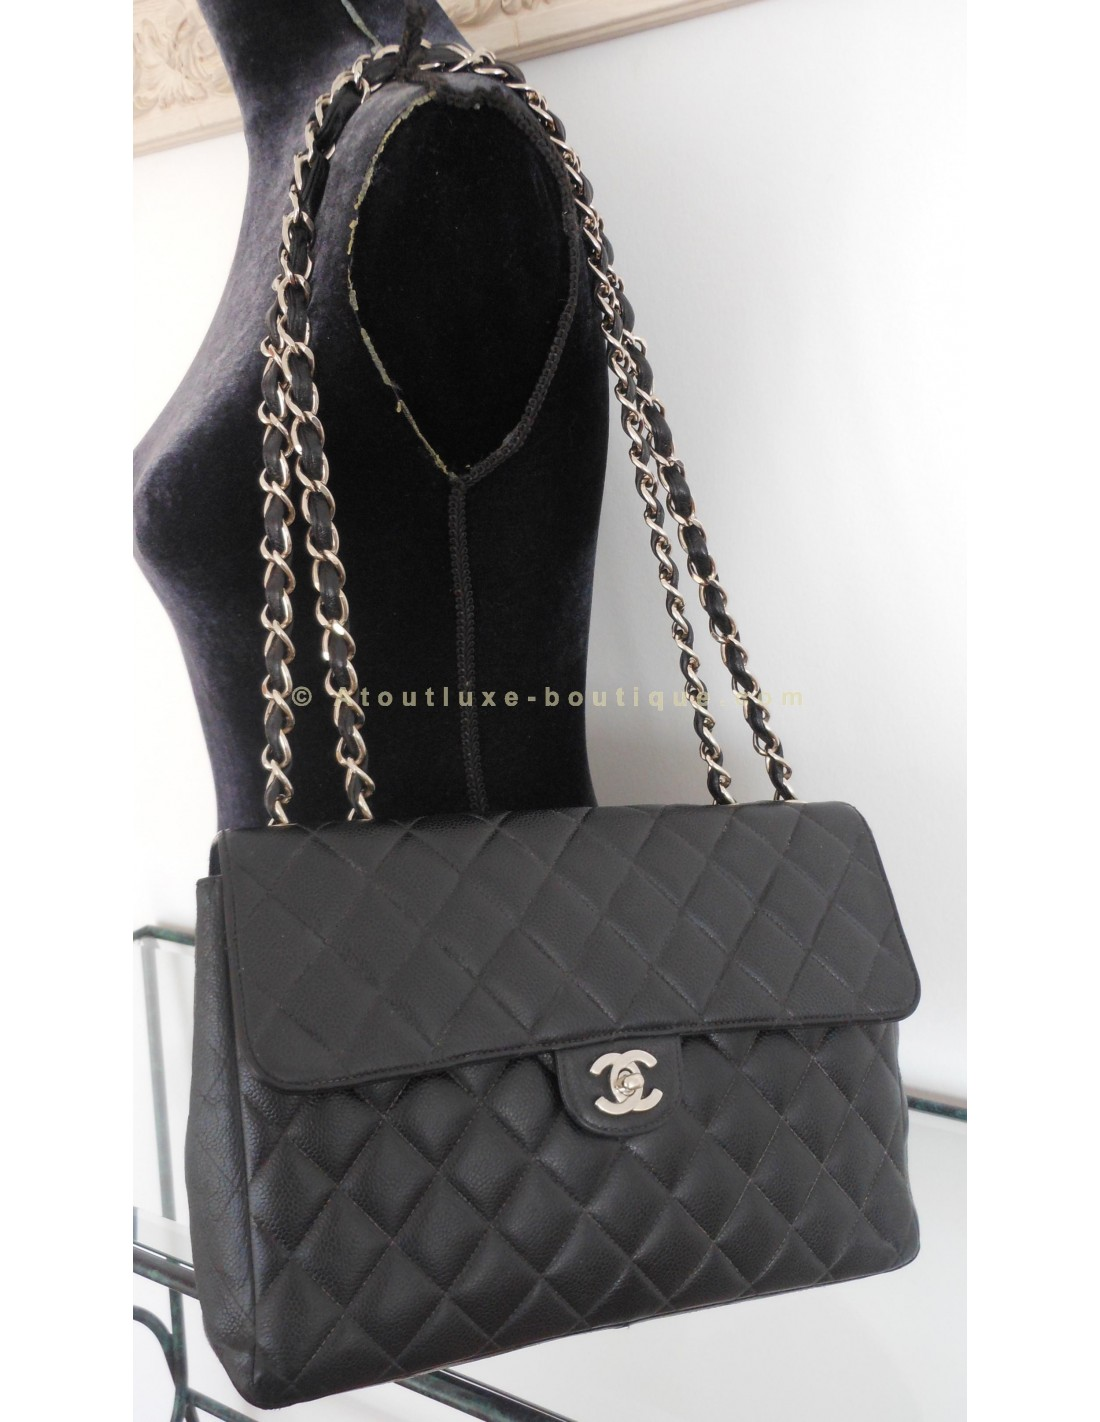 Sac chanel timeless grand modele atoutluxe boutique for Sac chanel interieur